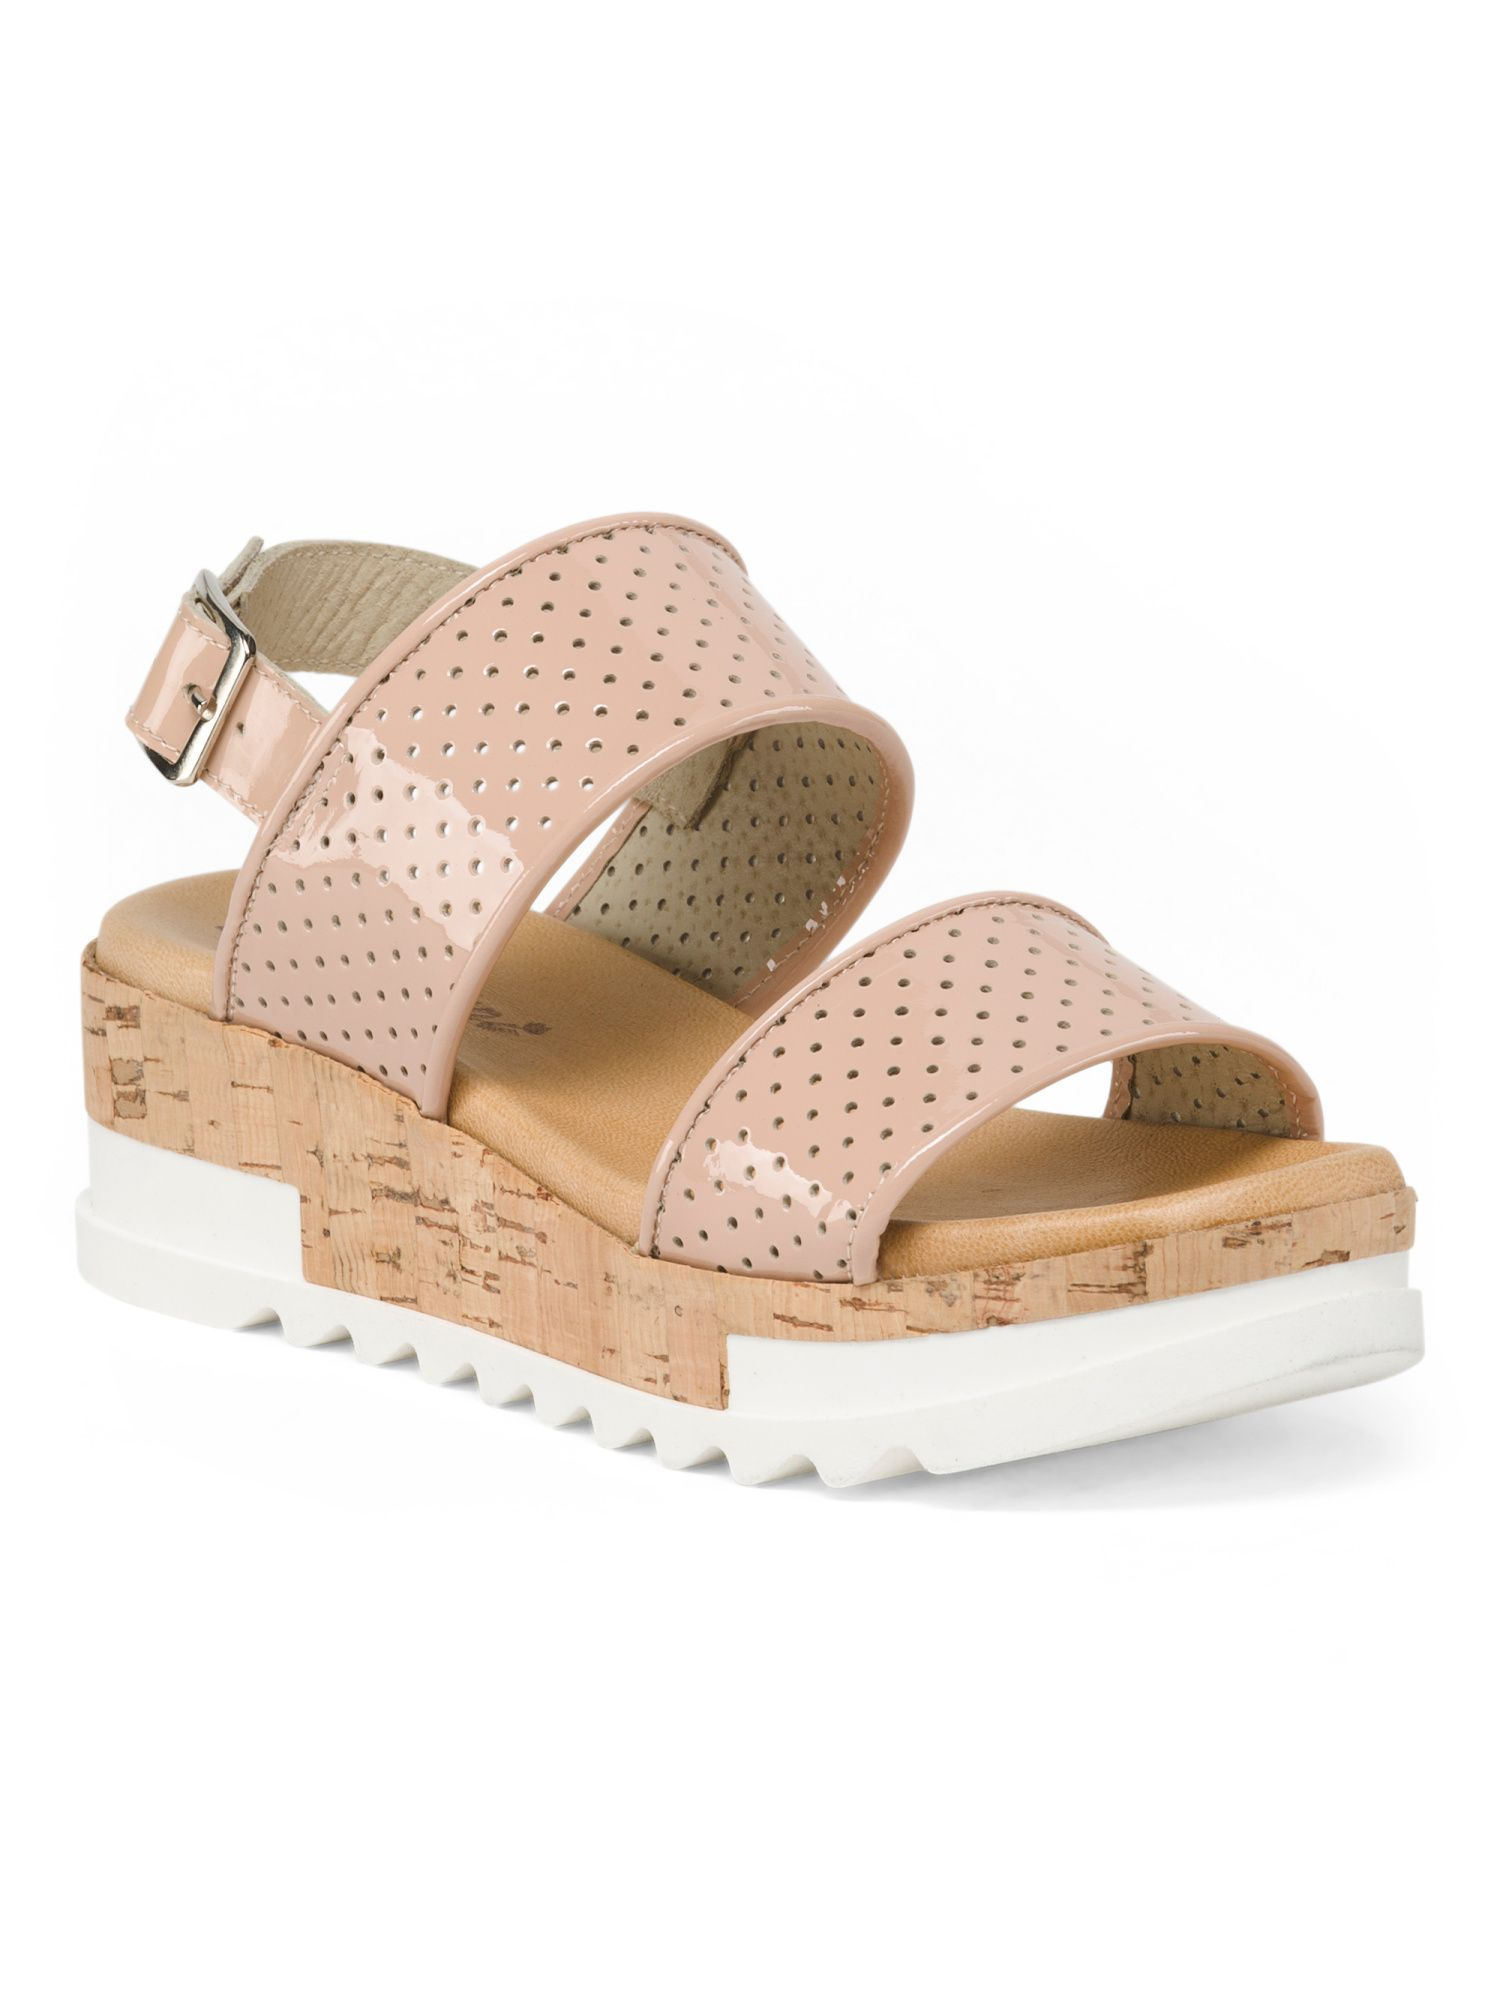 715d9d80c19 Made In Italy Patent Leather Sandals | Products | Leather sandals ...